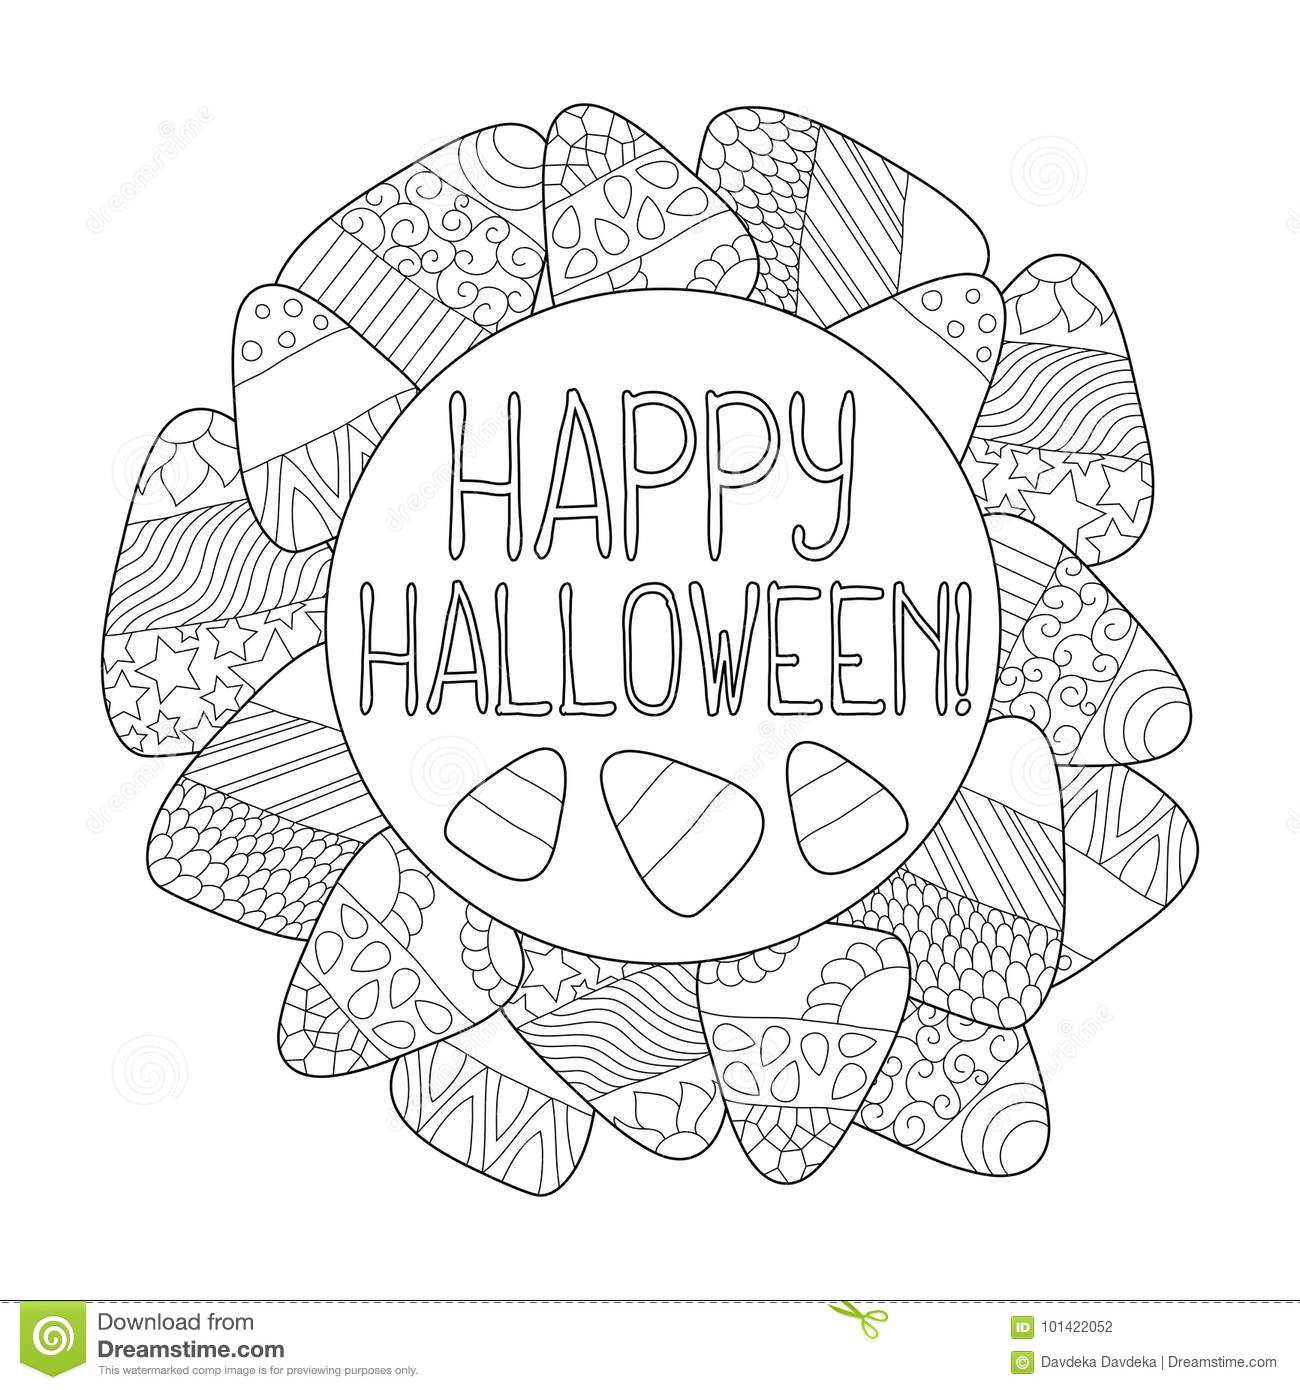 coloring halloween candy corn candy corn clipart 47 cliparts coloring corn candy halloween